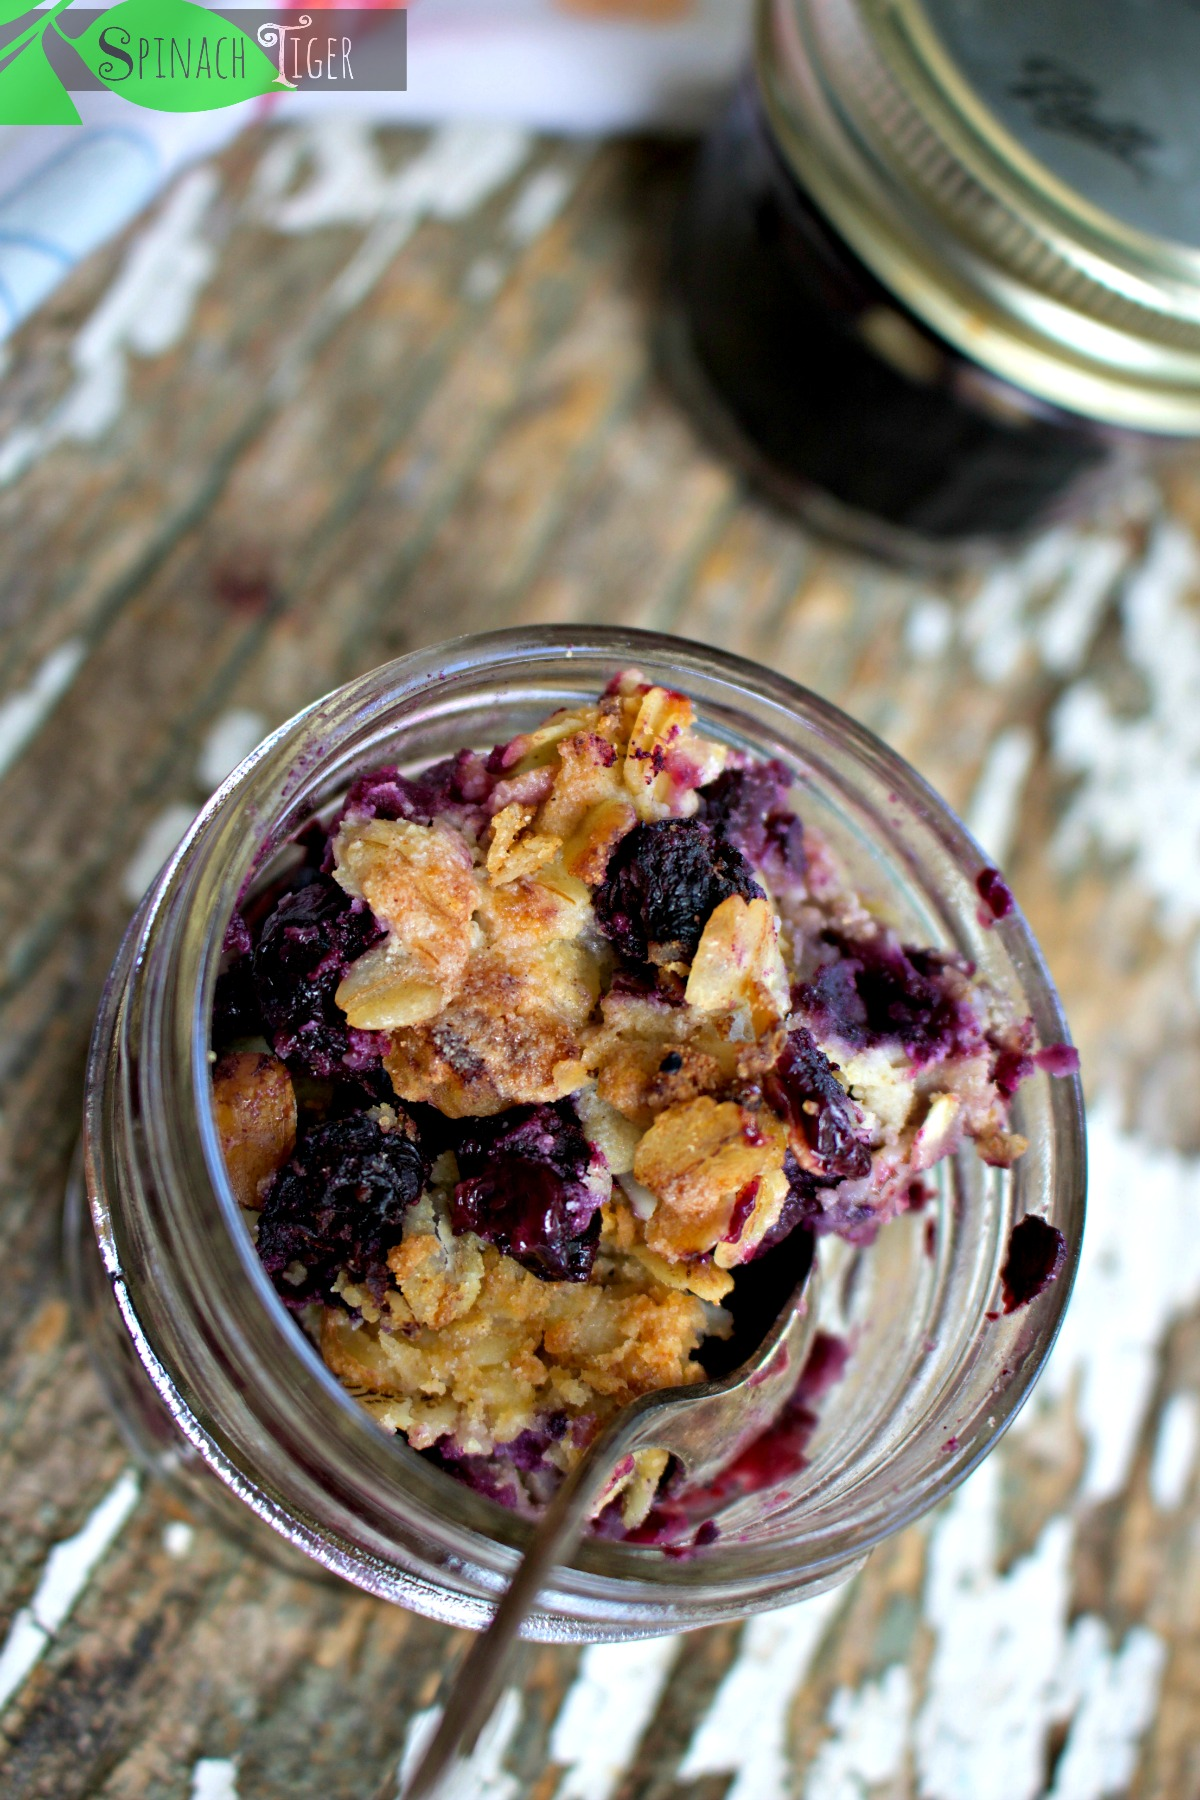 Blueberry Crisp Recipe. Easy and Gluten Free from Spinach Tiger